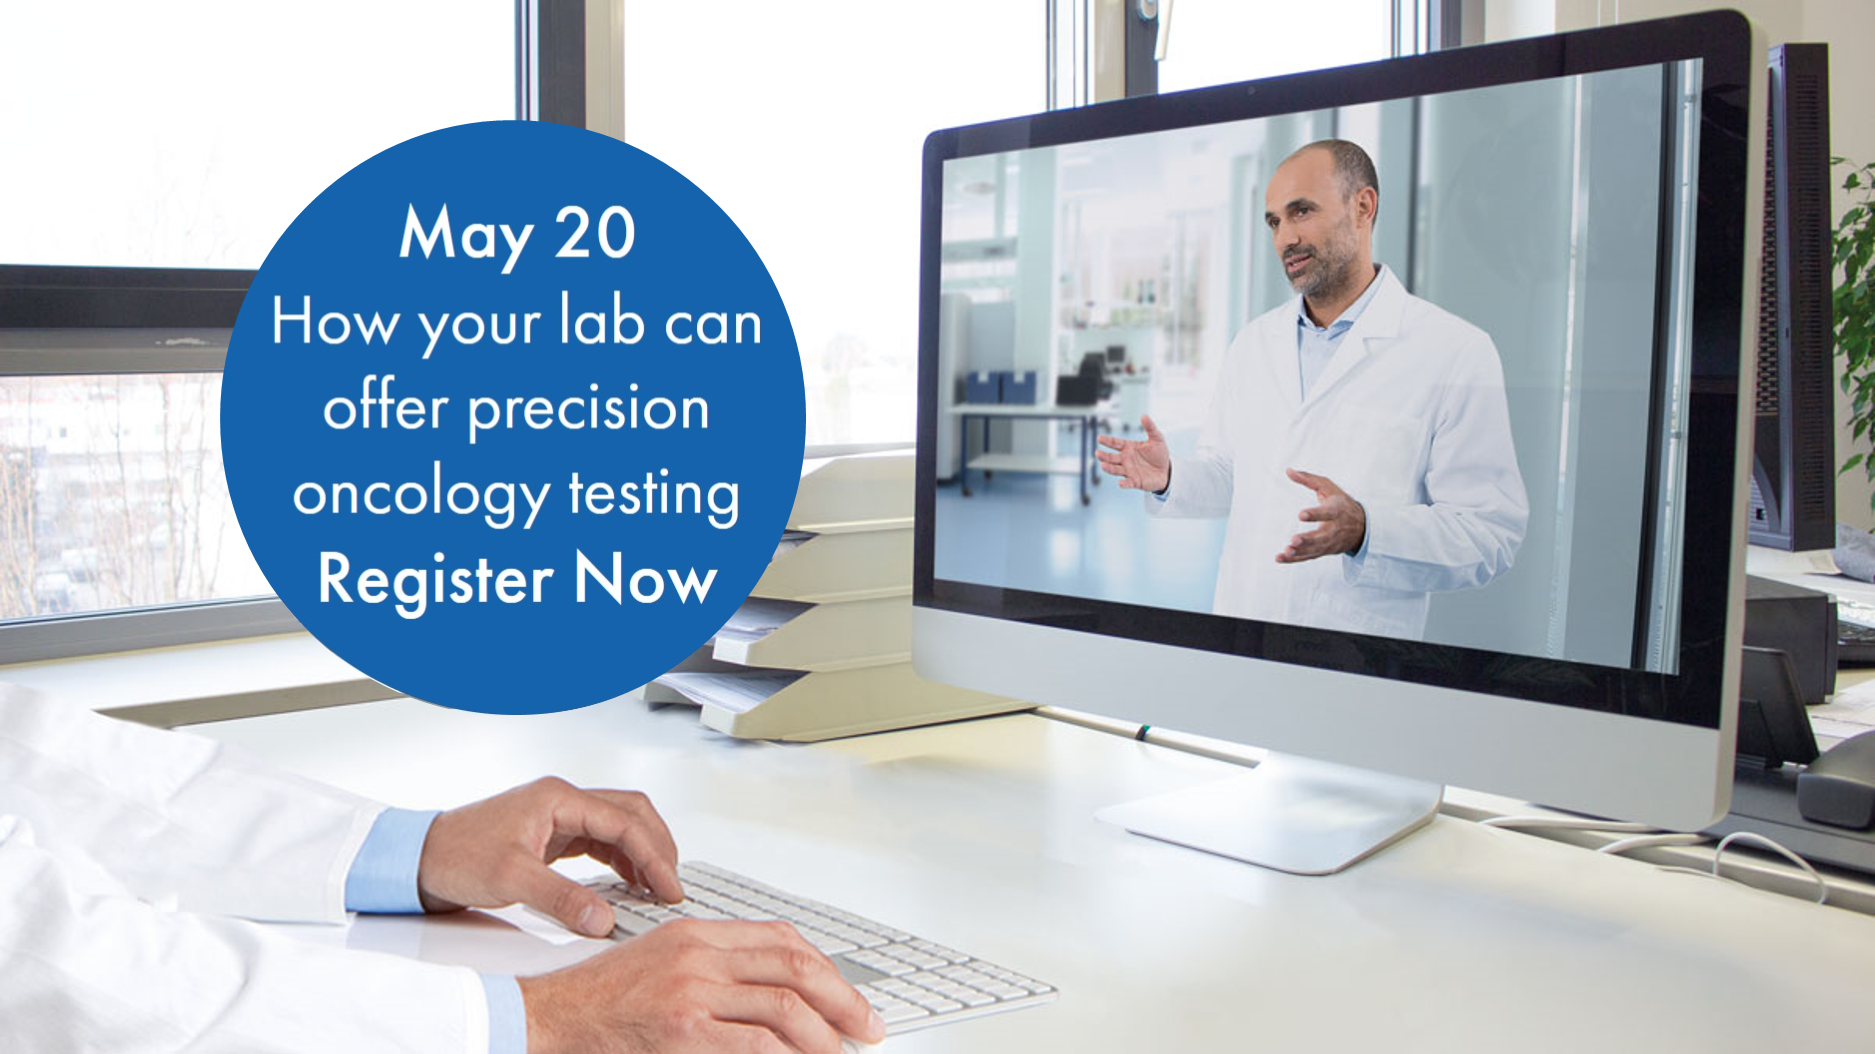 Interested in offering precision oncology testing in your lab?